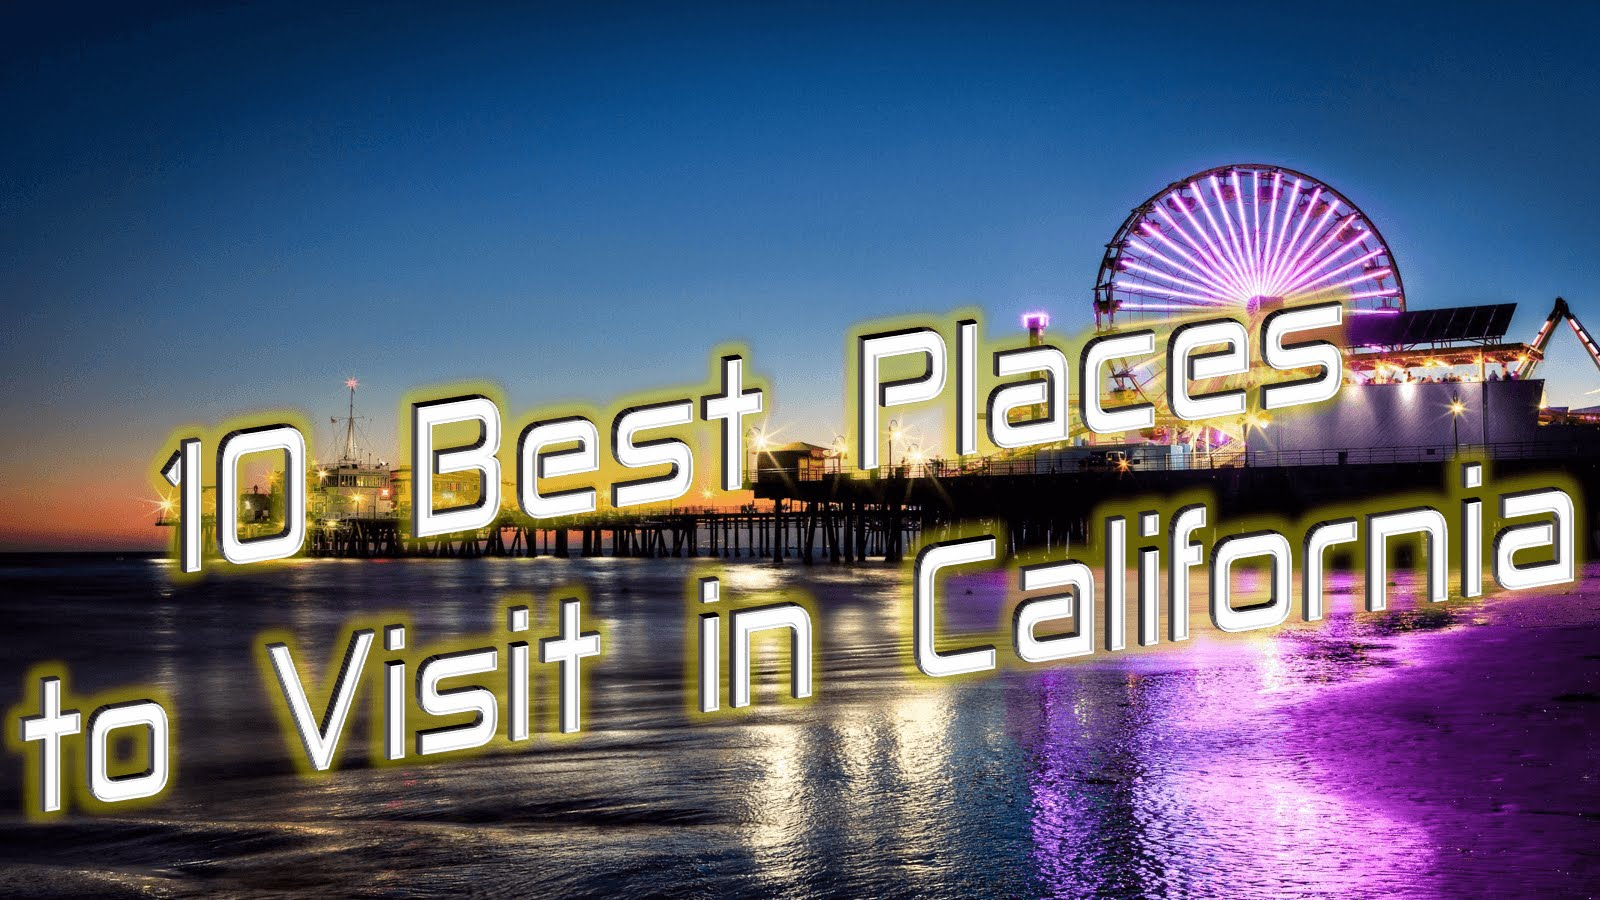 The best dating cities in california